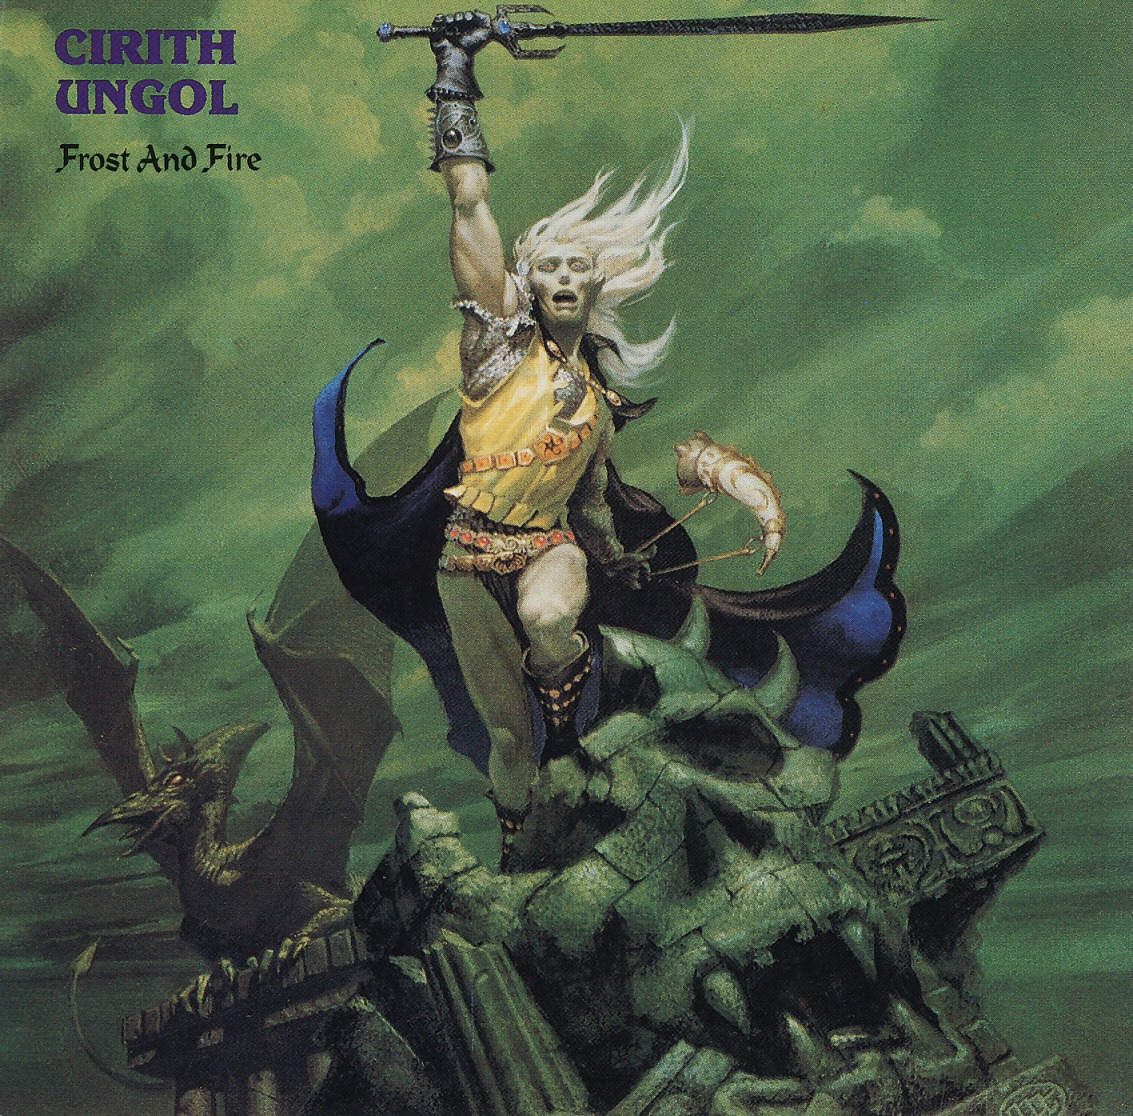 CIRITH UNGOL (US) / Frost And Fire + 1